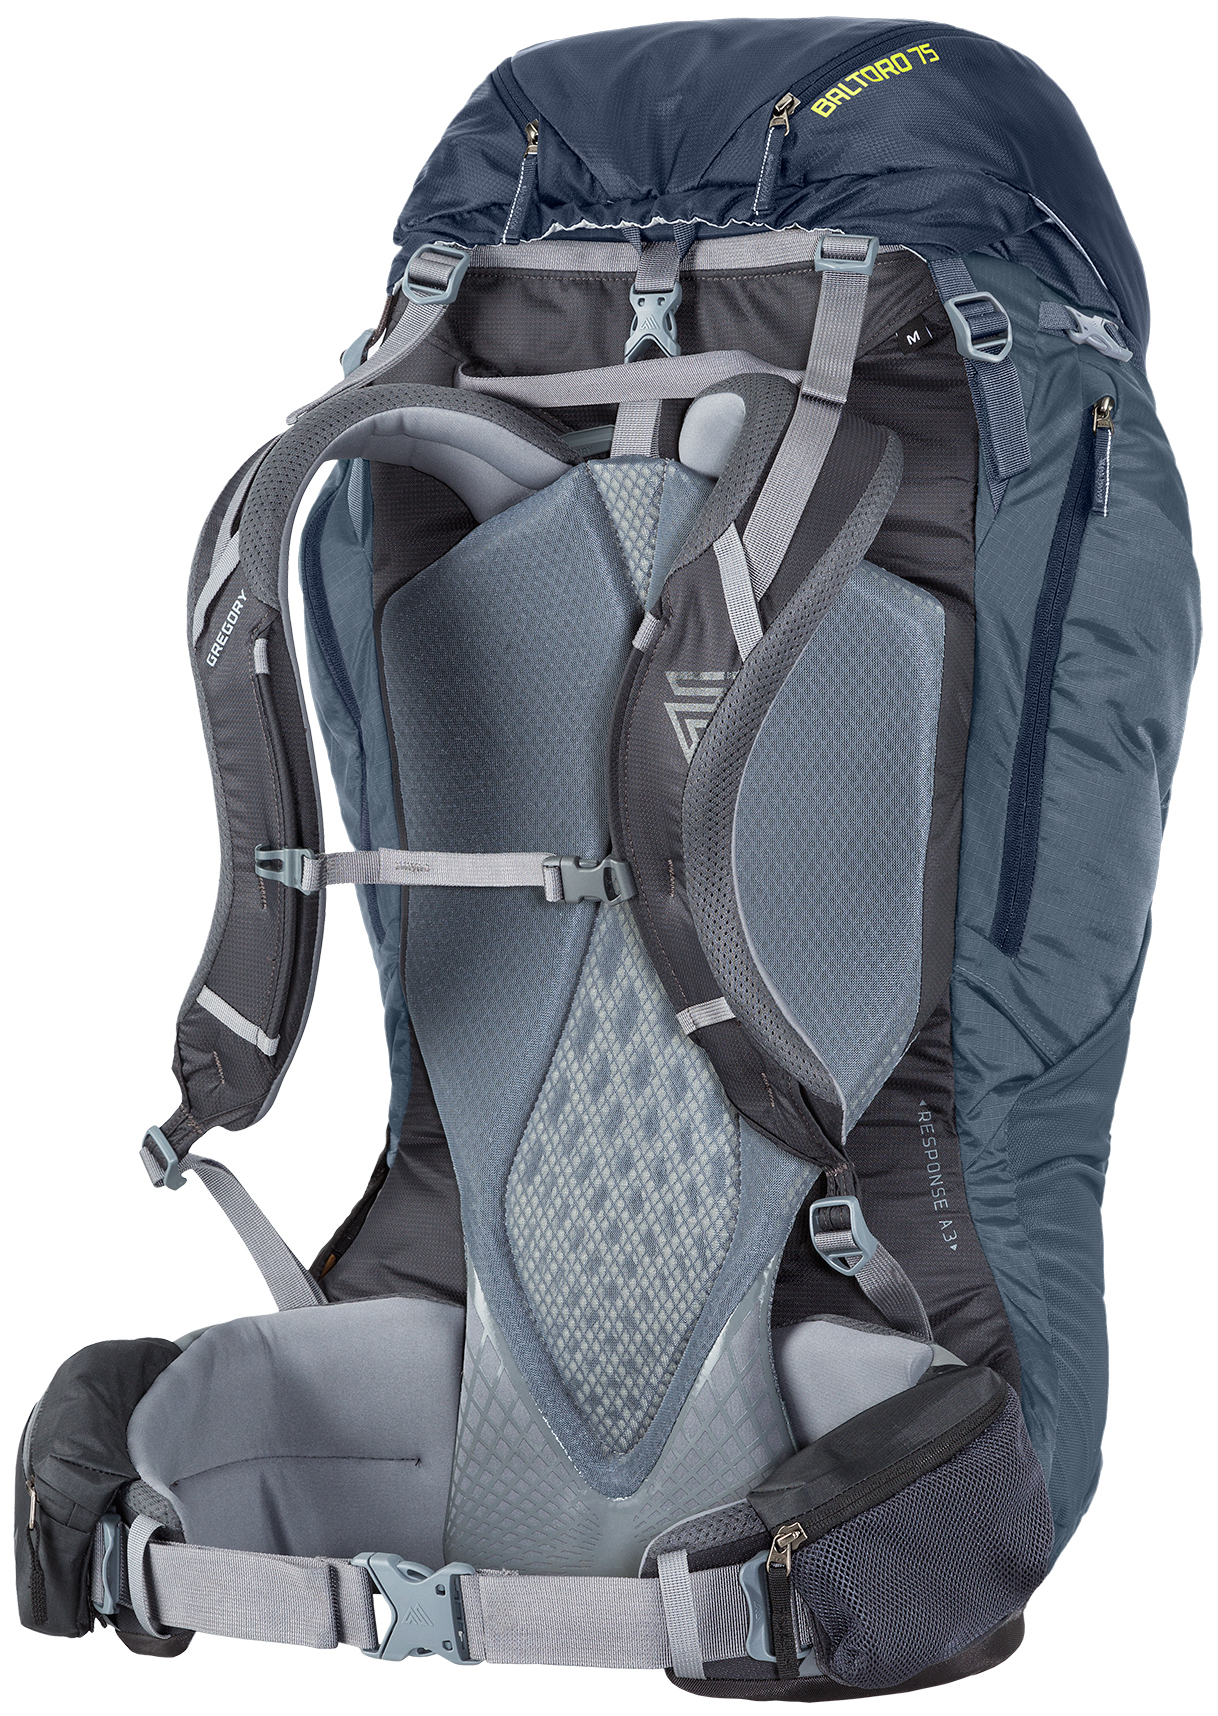 d6e52bd4dfd0 Gregory Baltoro 75 Backpack - Unisex